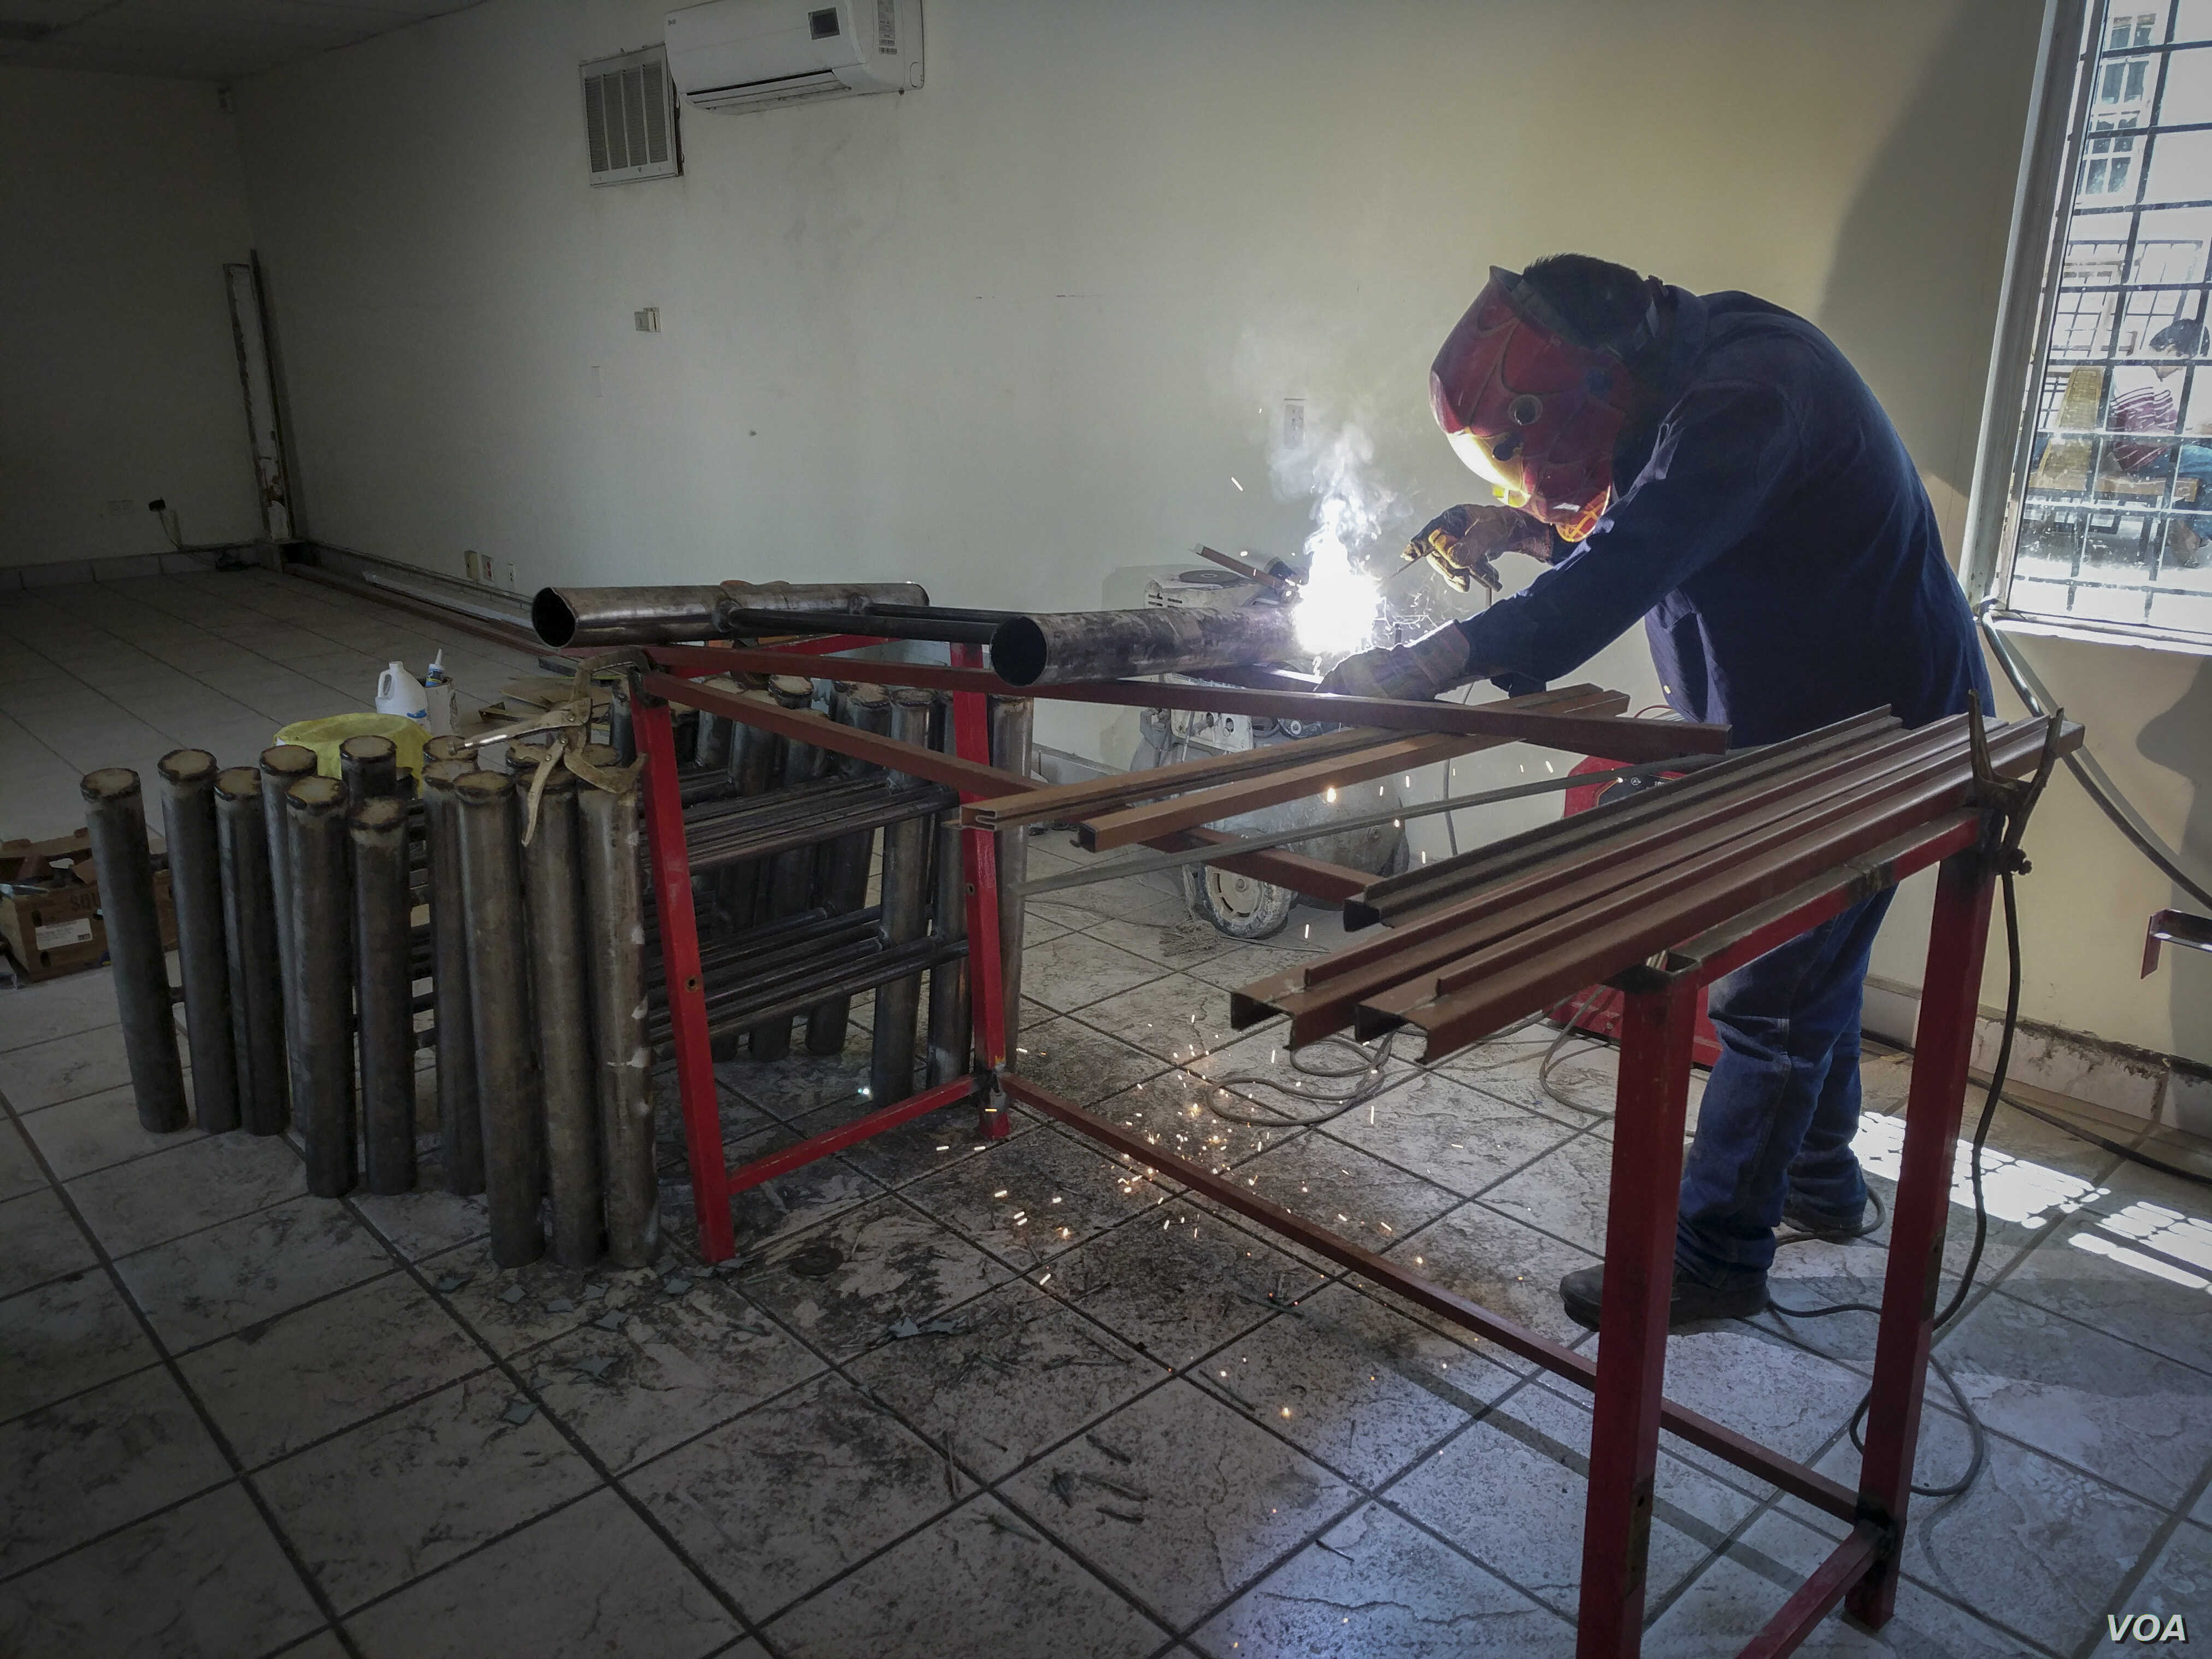 A welder is seen assembling beds at Alfa y Omega migrant shelter in Mexicali, Mexico, in preparation for the Central American caravan. (R. Taylor/VOA)